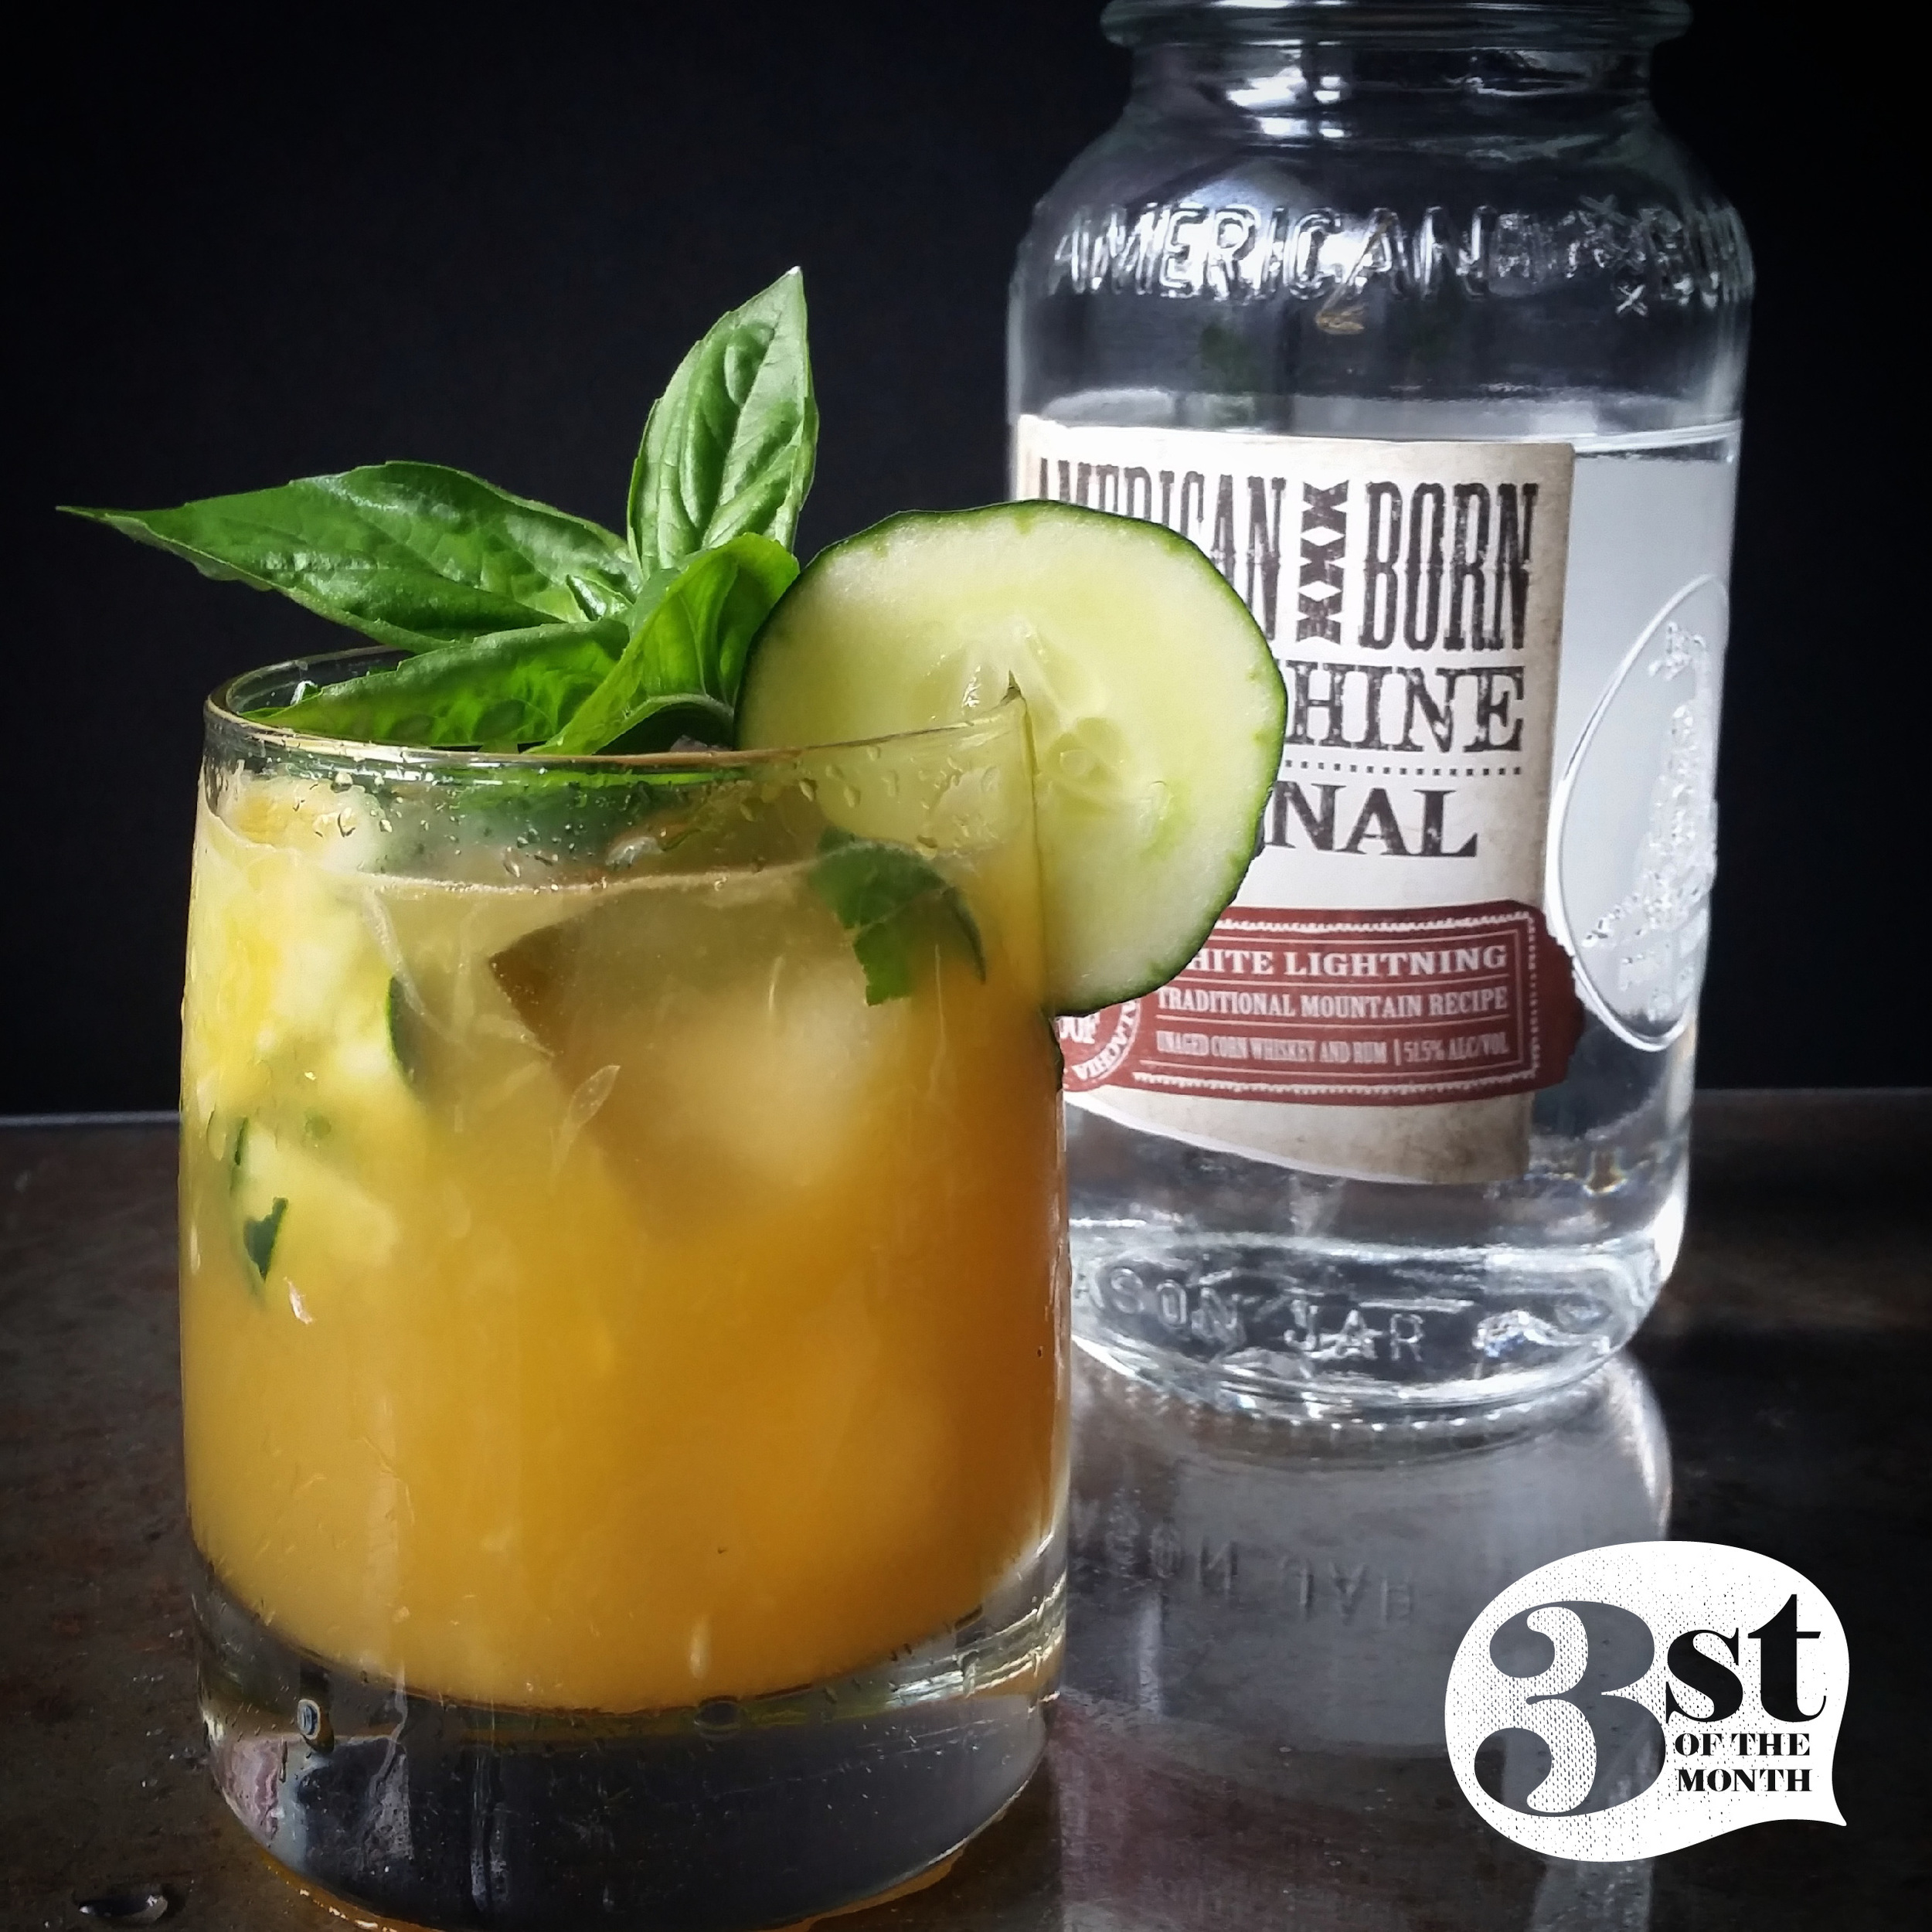 The Farmer John moonshine cocktail from 3st   Made with fresh carrot juice, cucumber basil and mint syrup